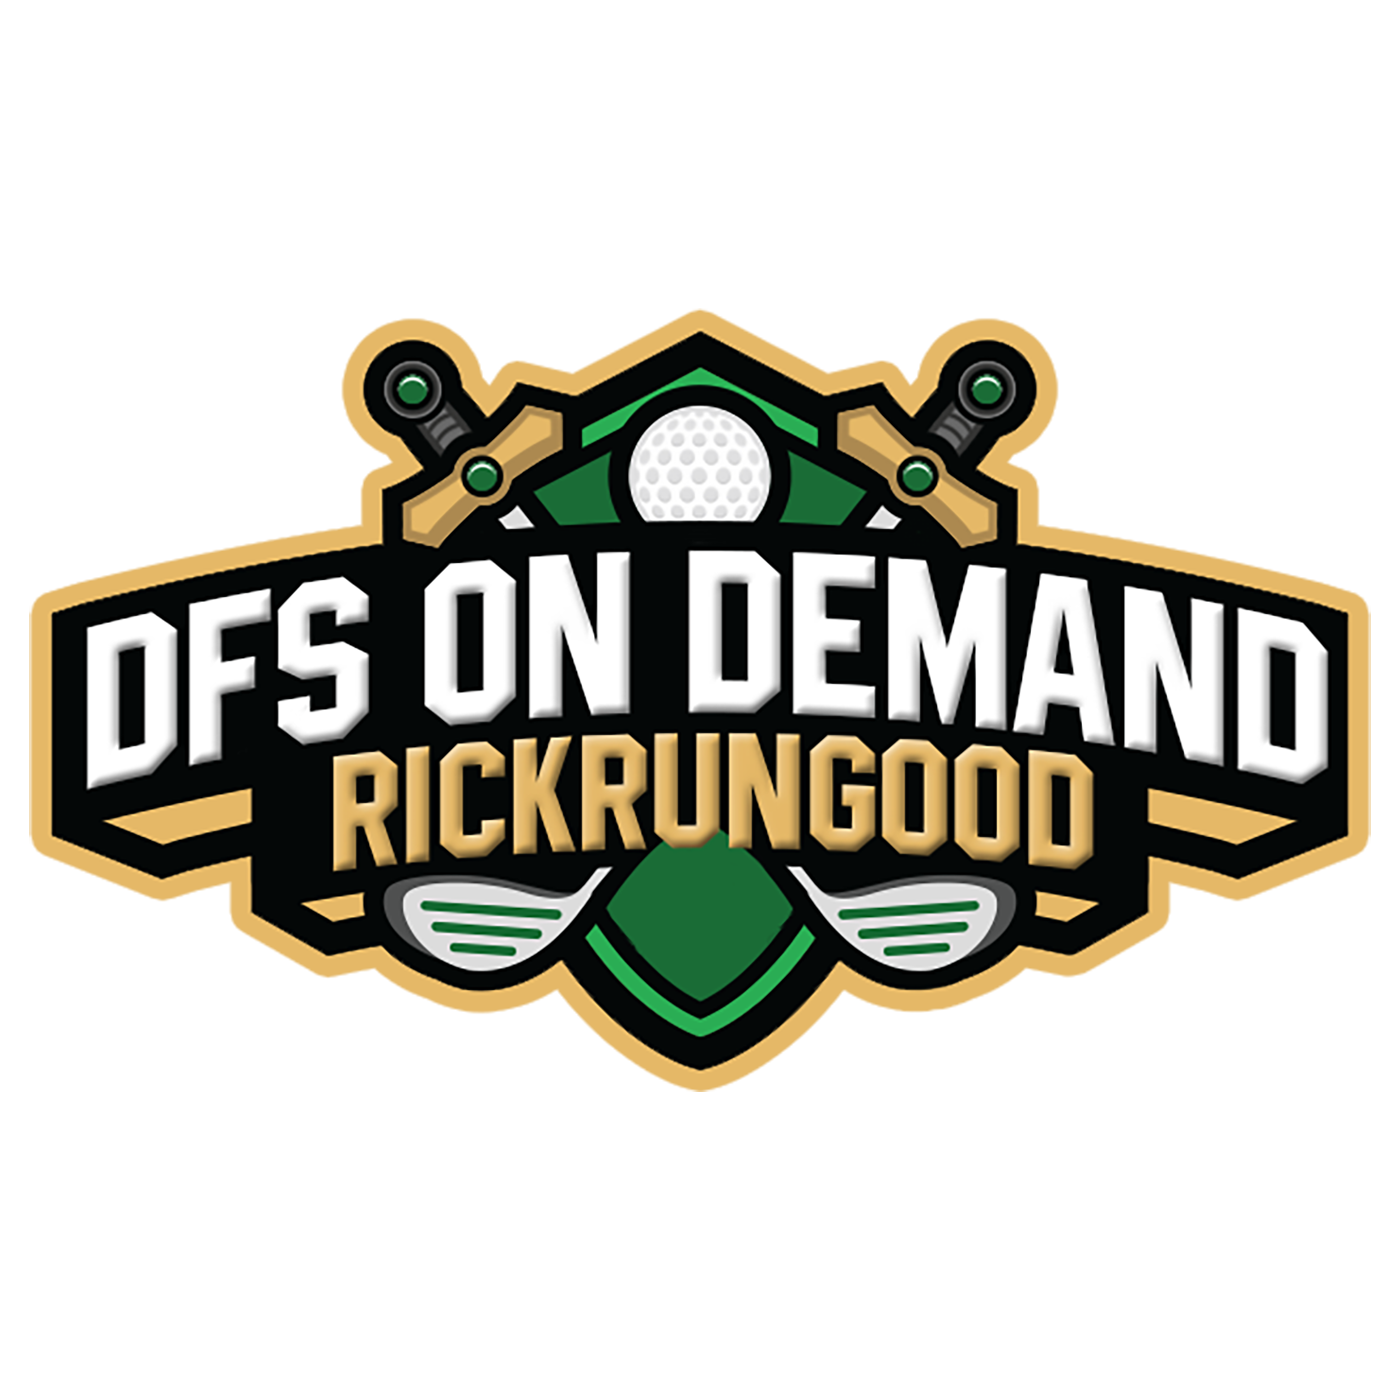 DFS On Demand: Research Tools and Interactive Data For Daily Fantasy Sports